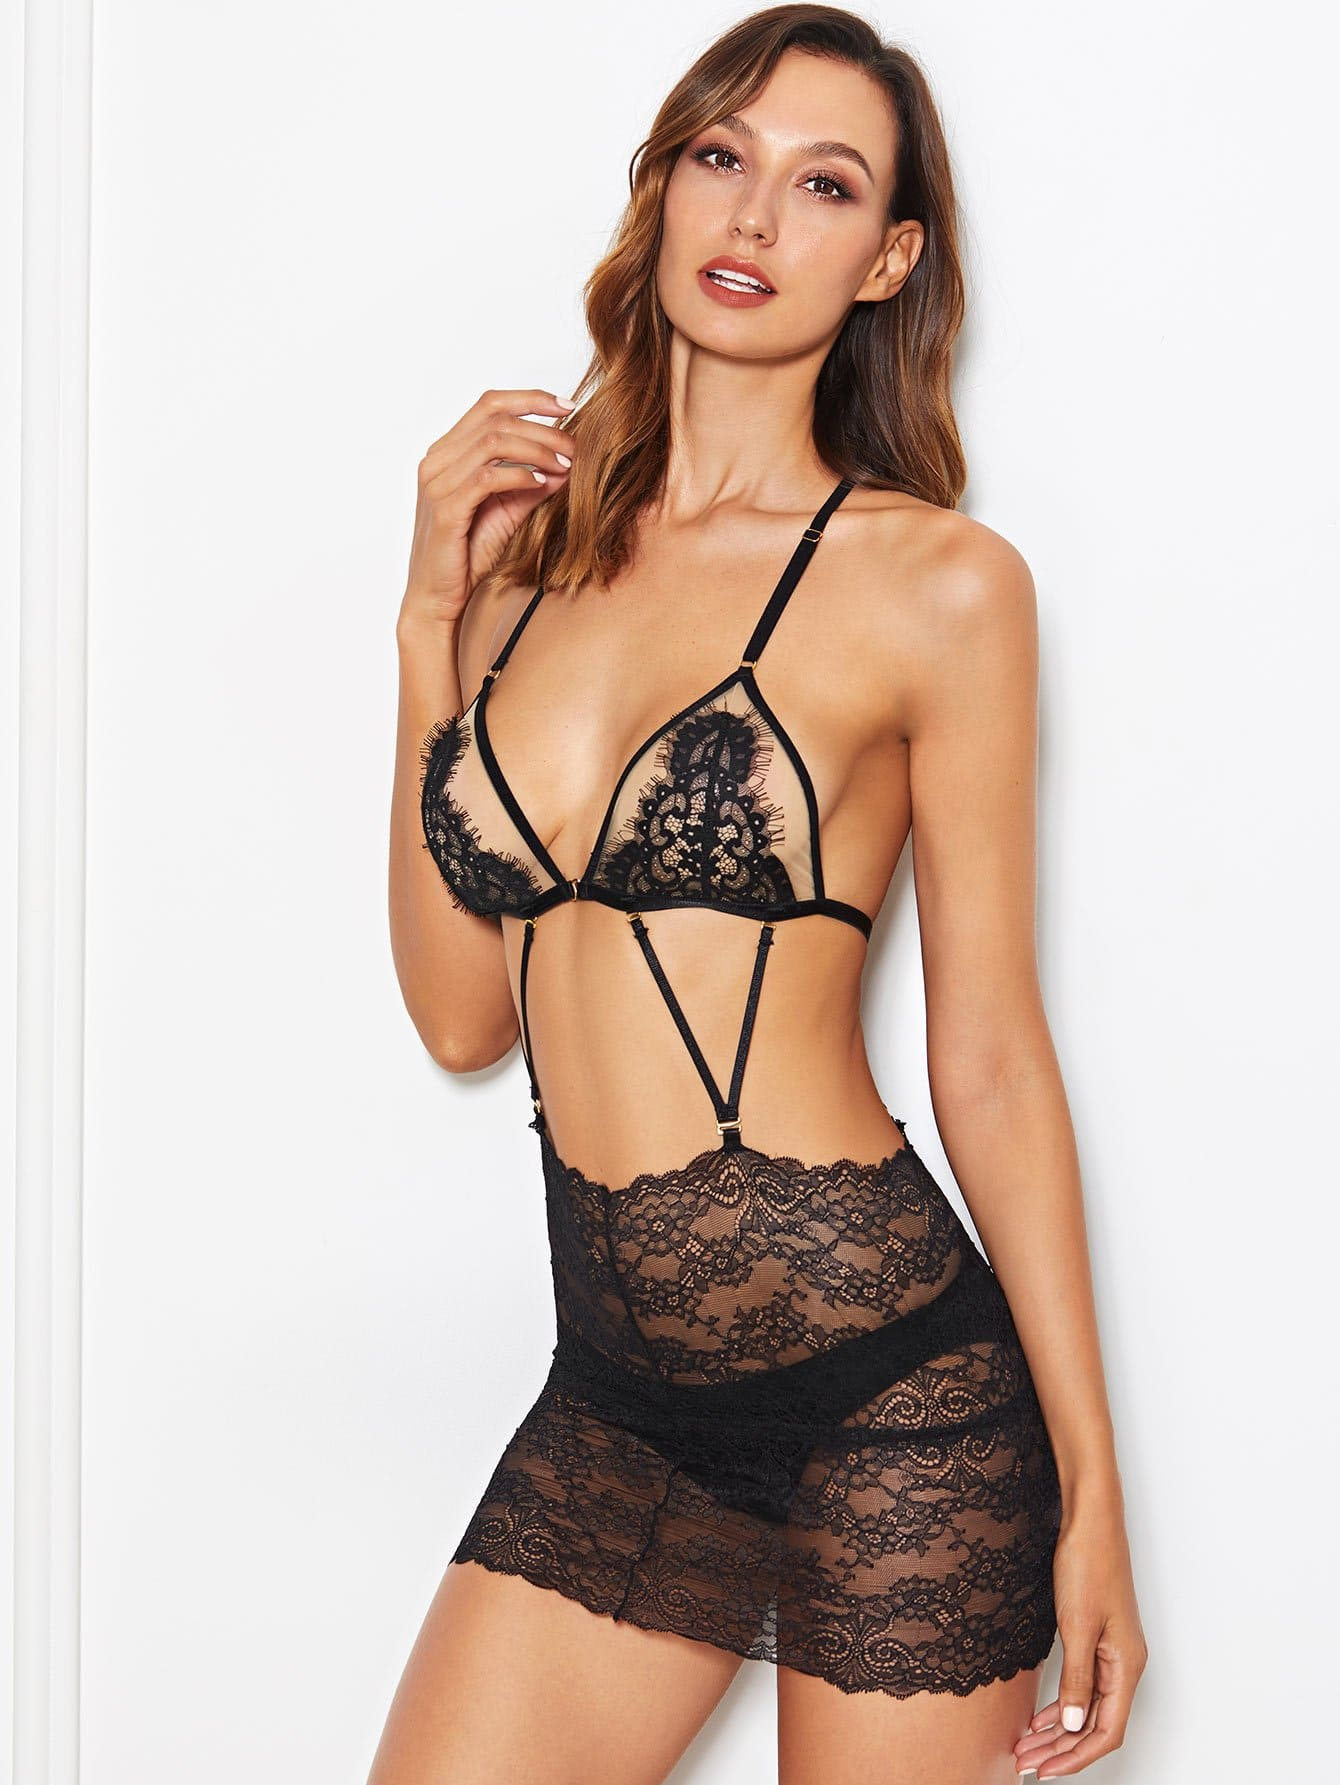 Harness Lace Bra And Bodycon Skirt And Thong